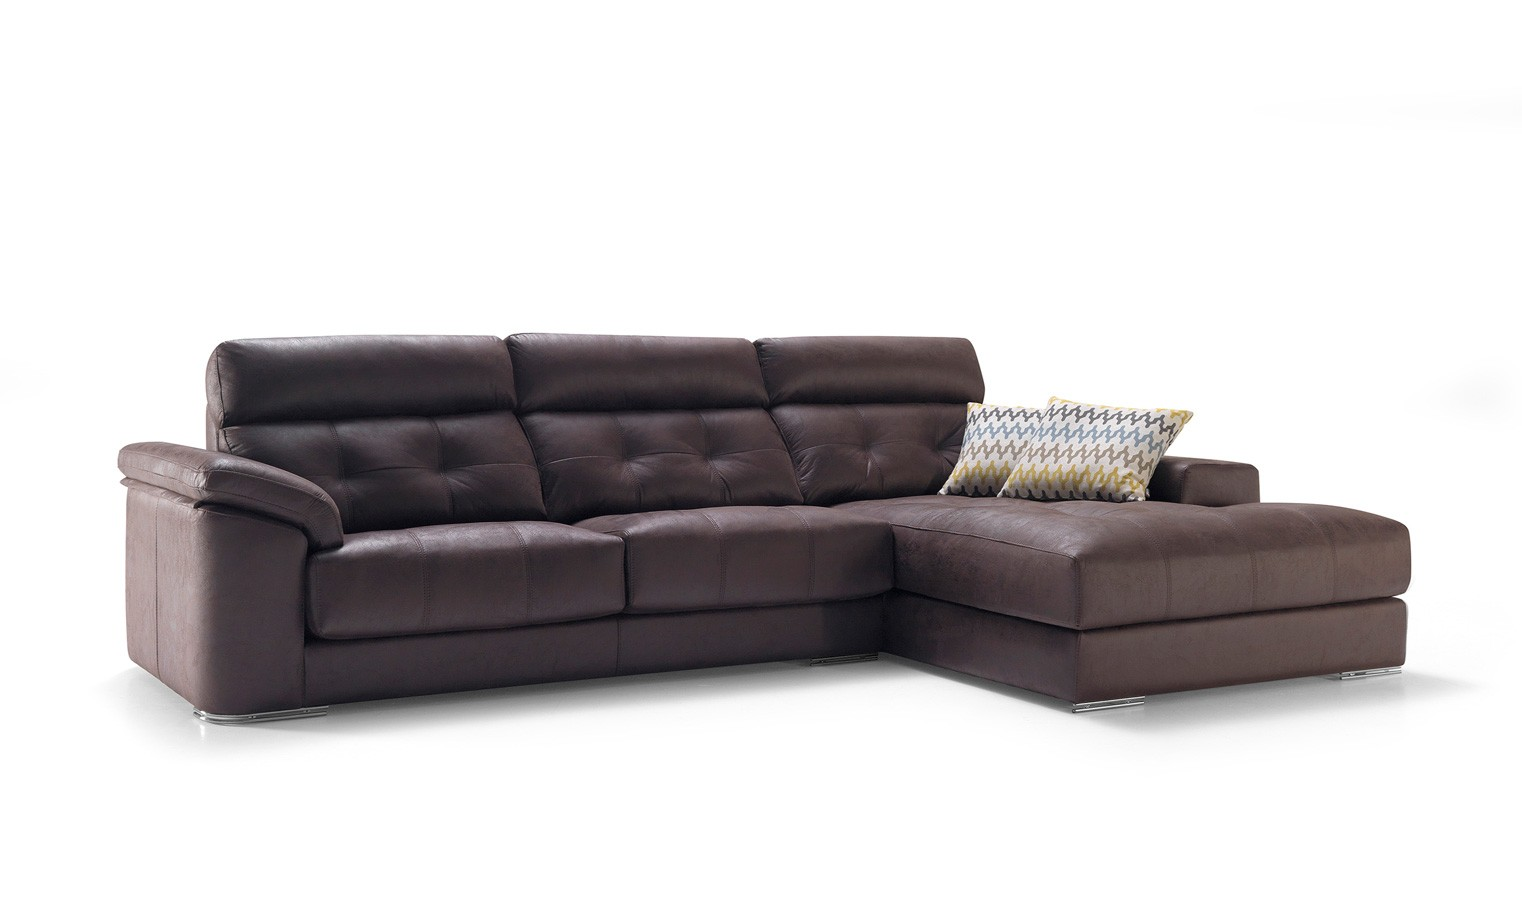 La boutique del sofa yecla beautiful el sofacama for Fabricas de sofas en yecla